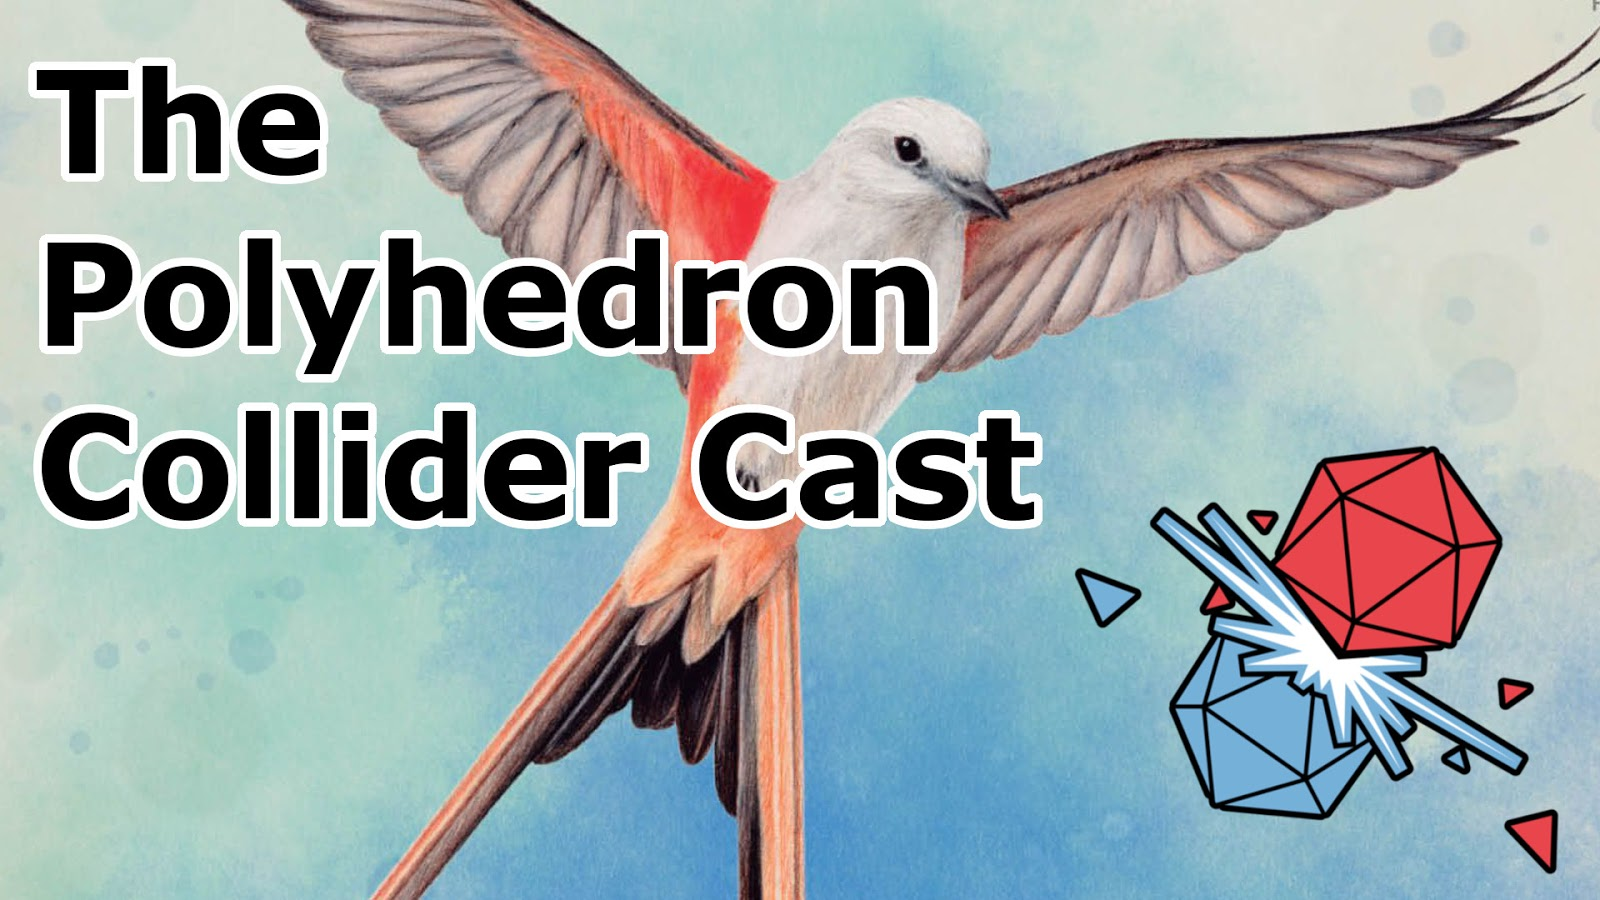 The Polyhedron Collider Cast Episode 64 - Wingspan, Villagers and Too Many Bones